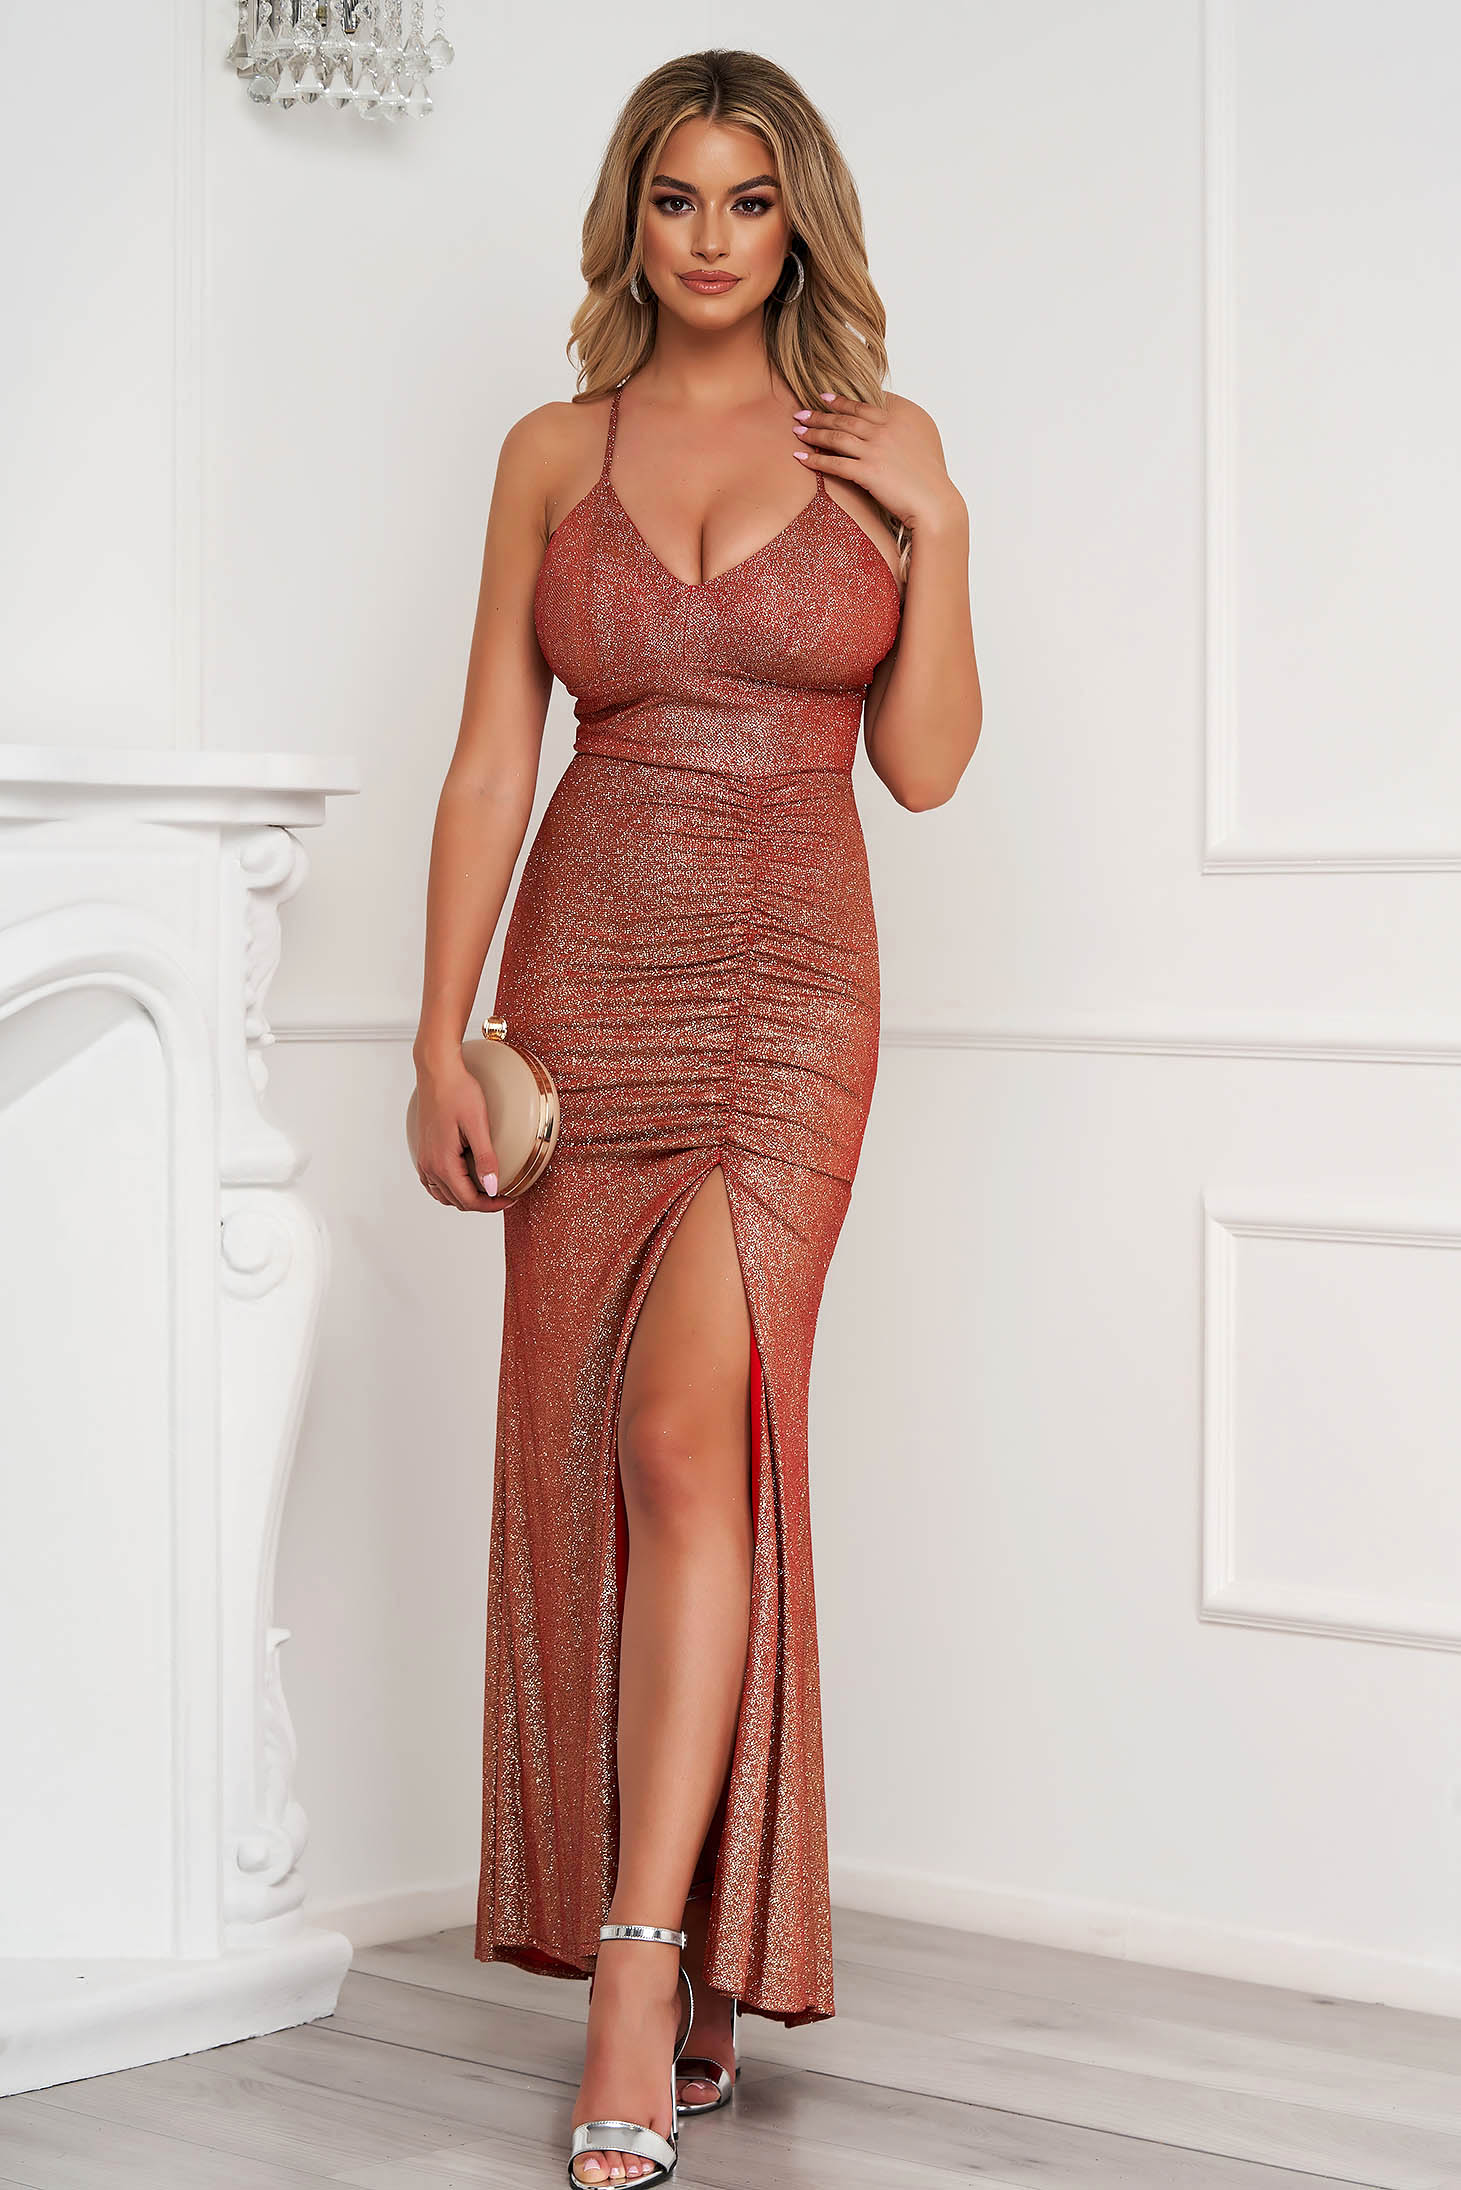 Coral dress occasional long pencil with push-up cups with straps